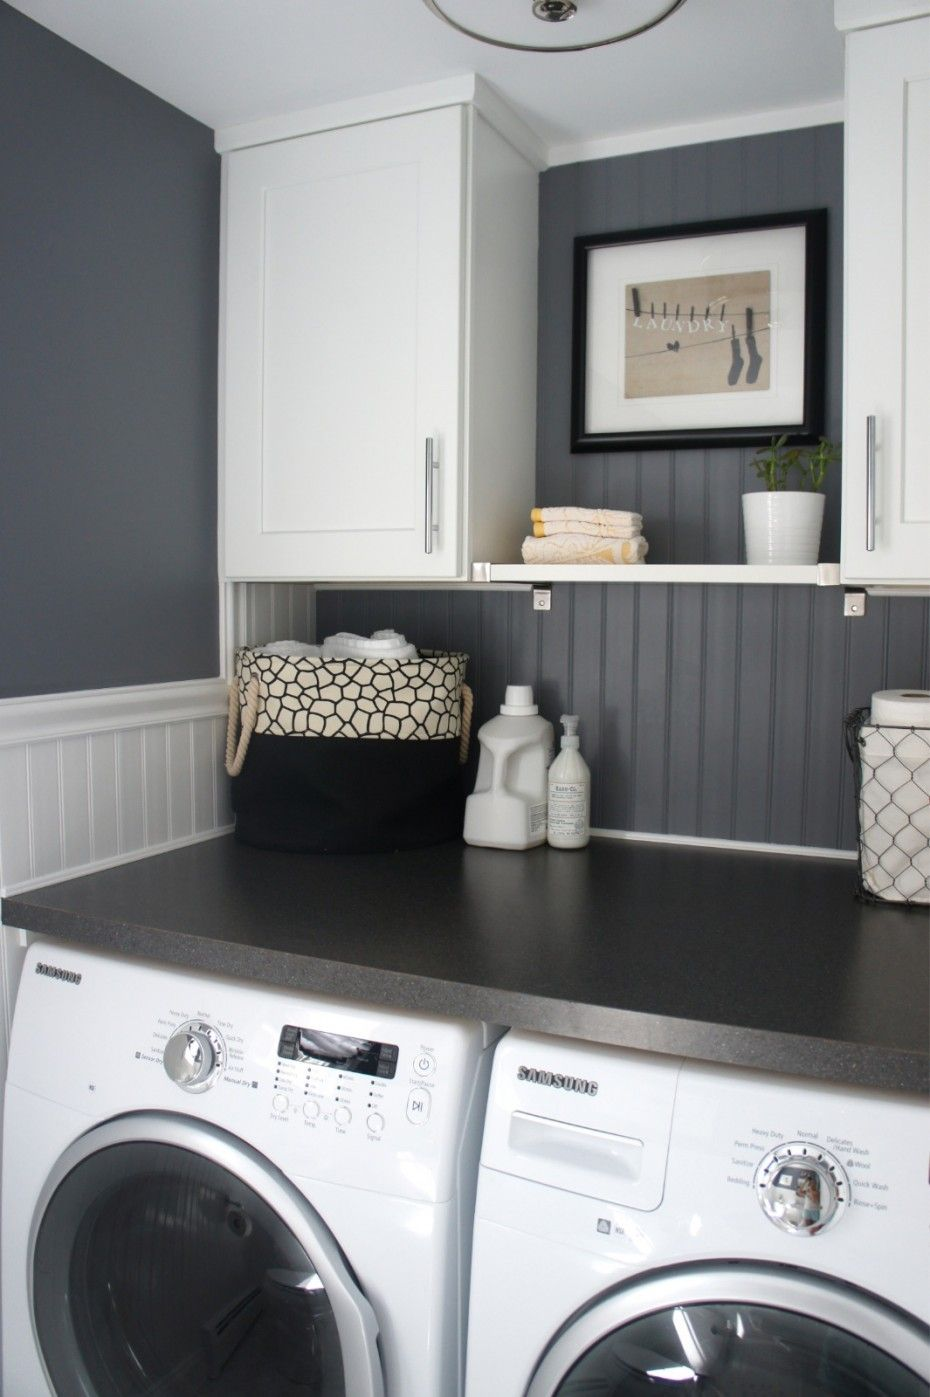 Design Modern Laundry Room With Decoration Wall Gray Wood Floor And Be Equipped White Table Towl